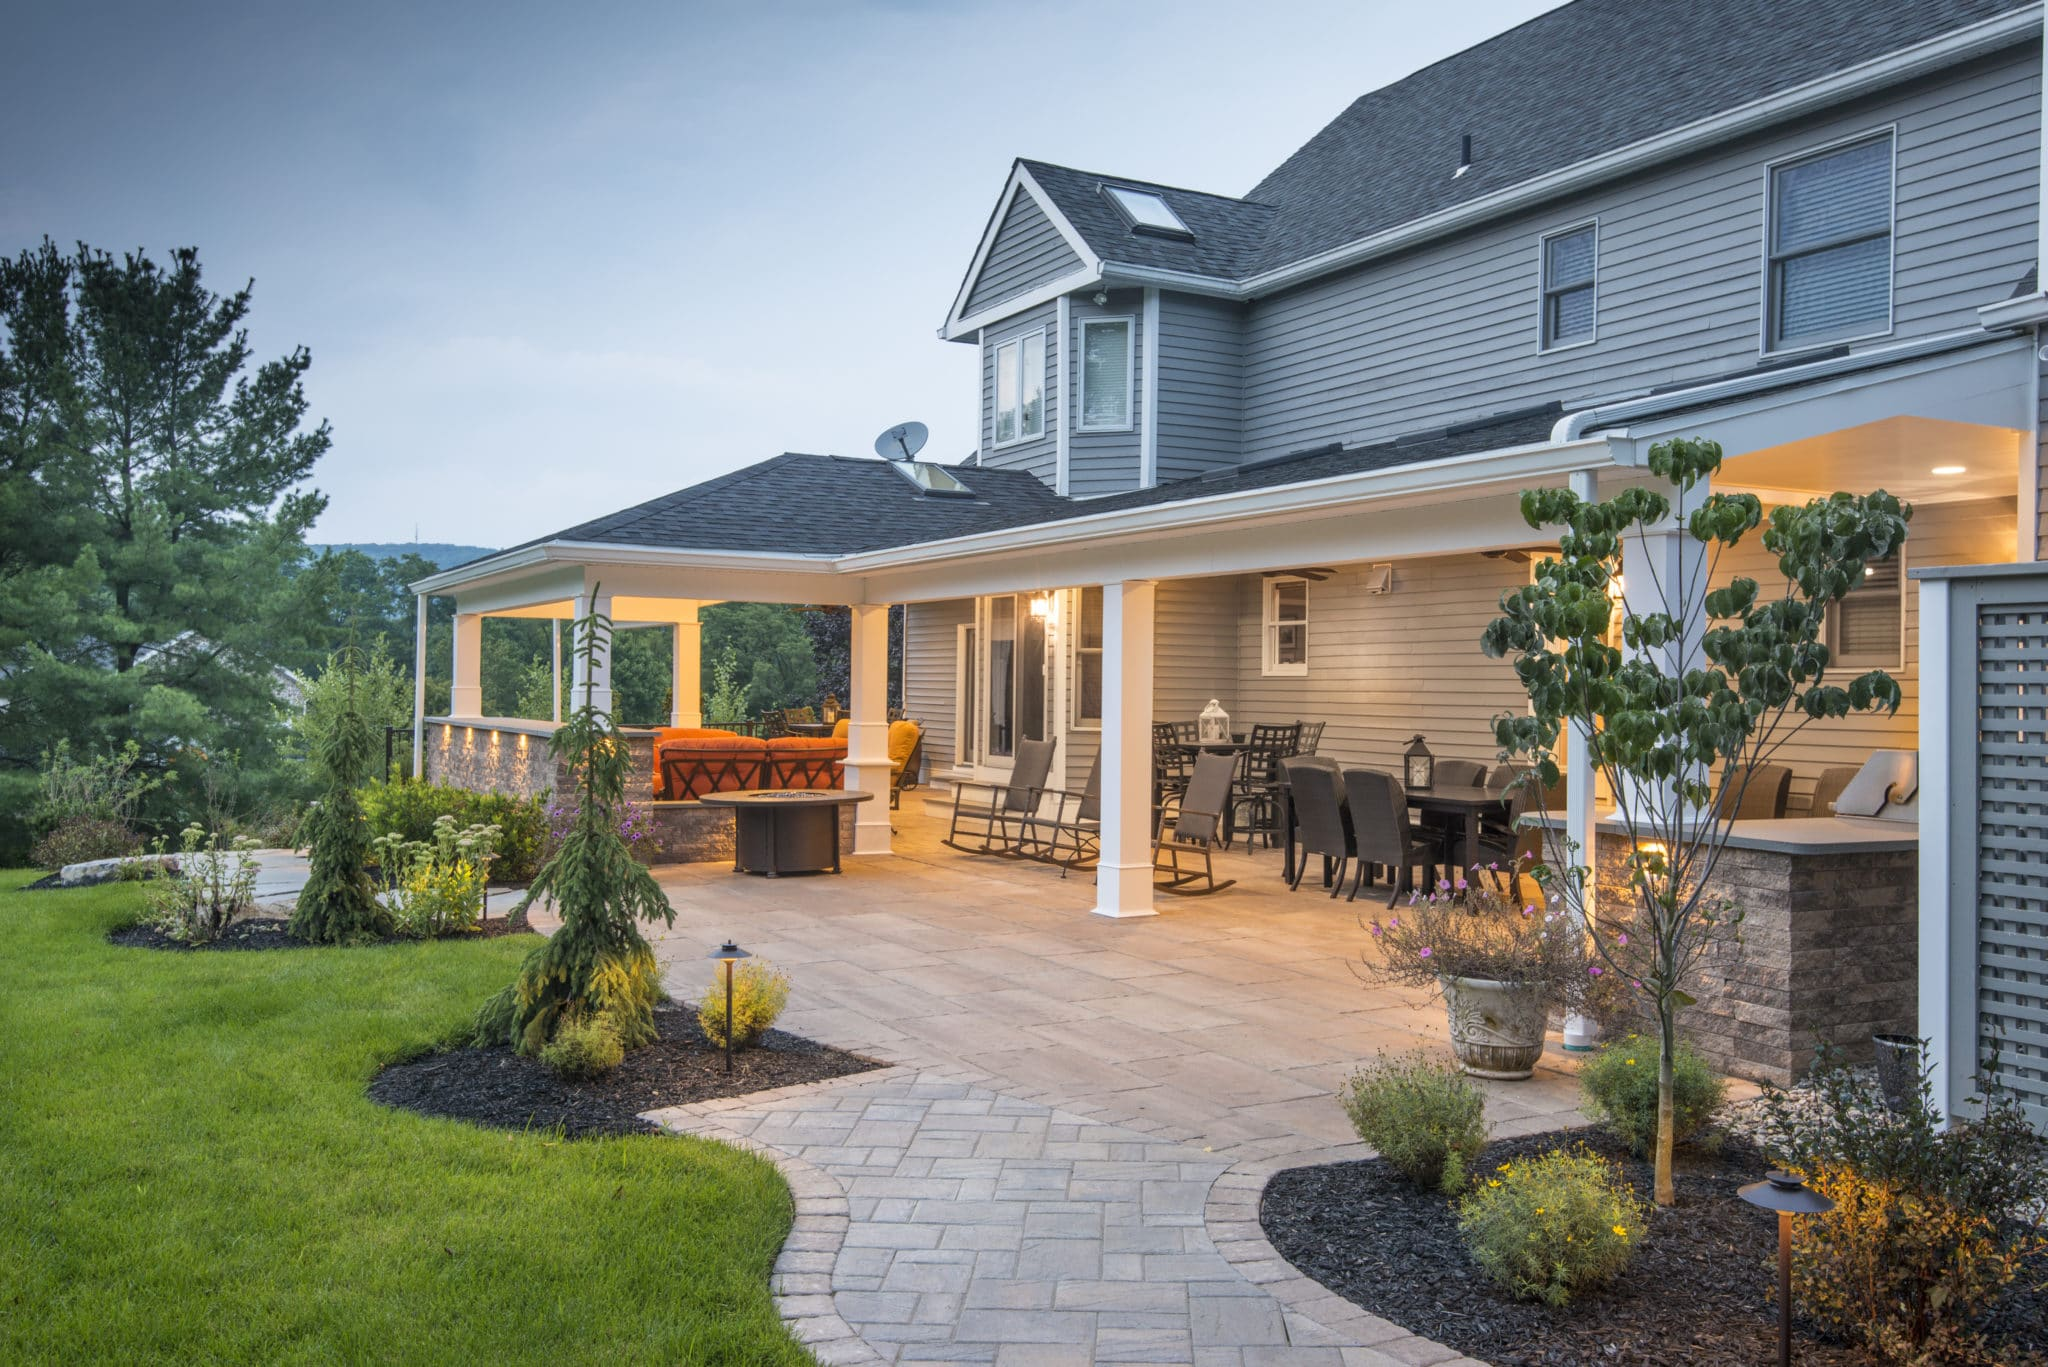 Covered porch and landscape lighting